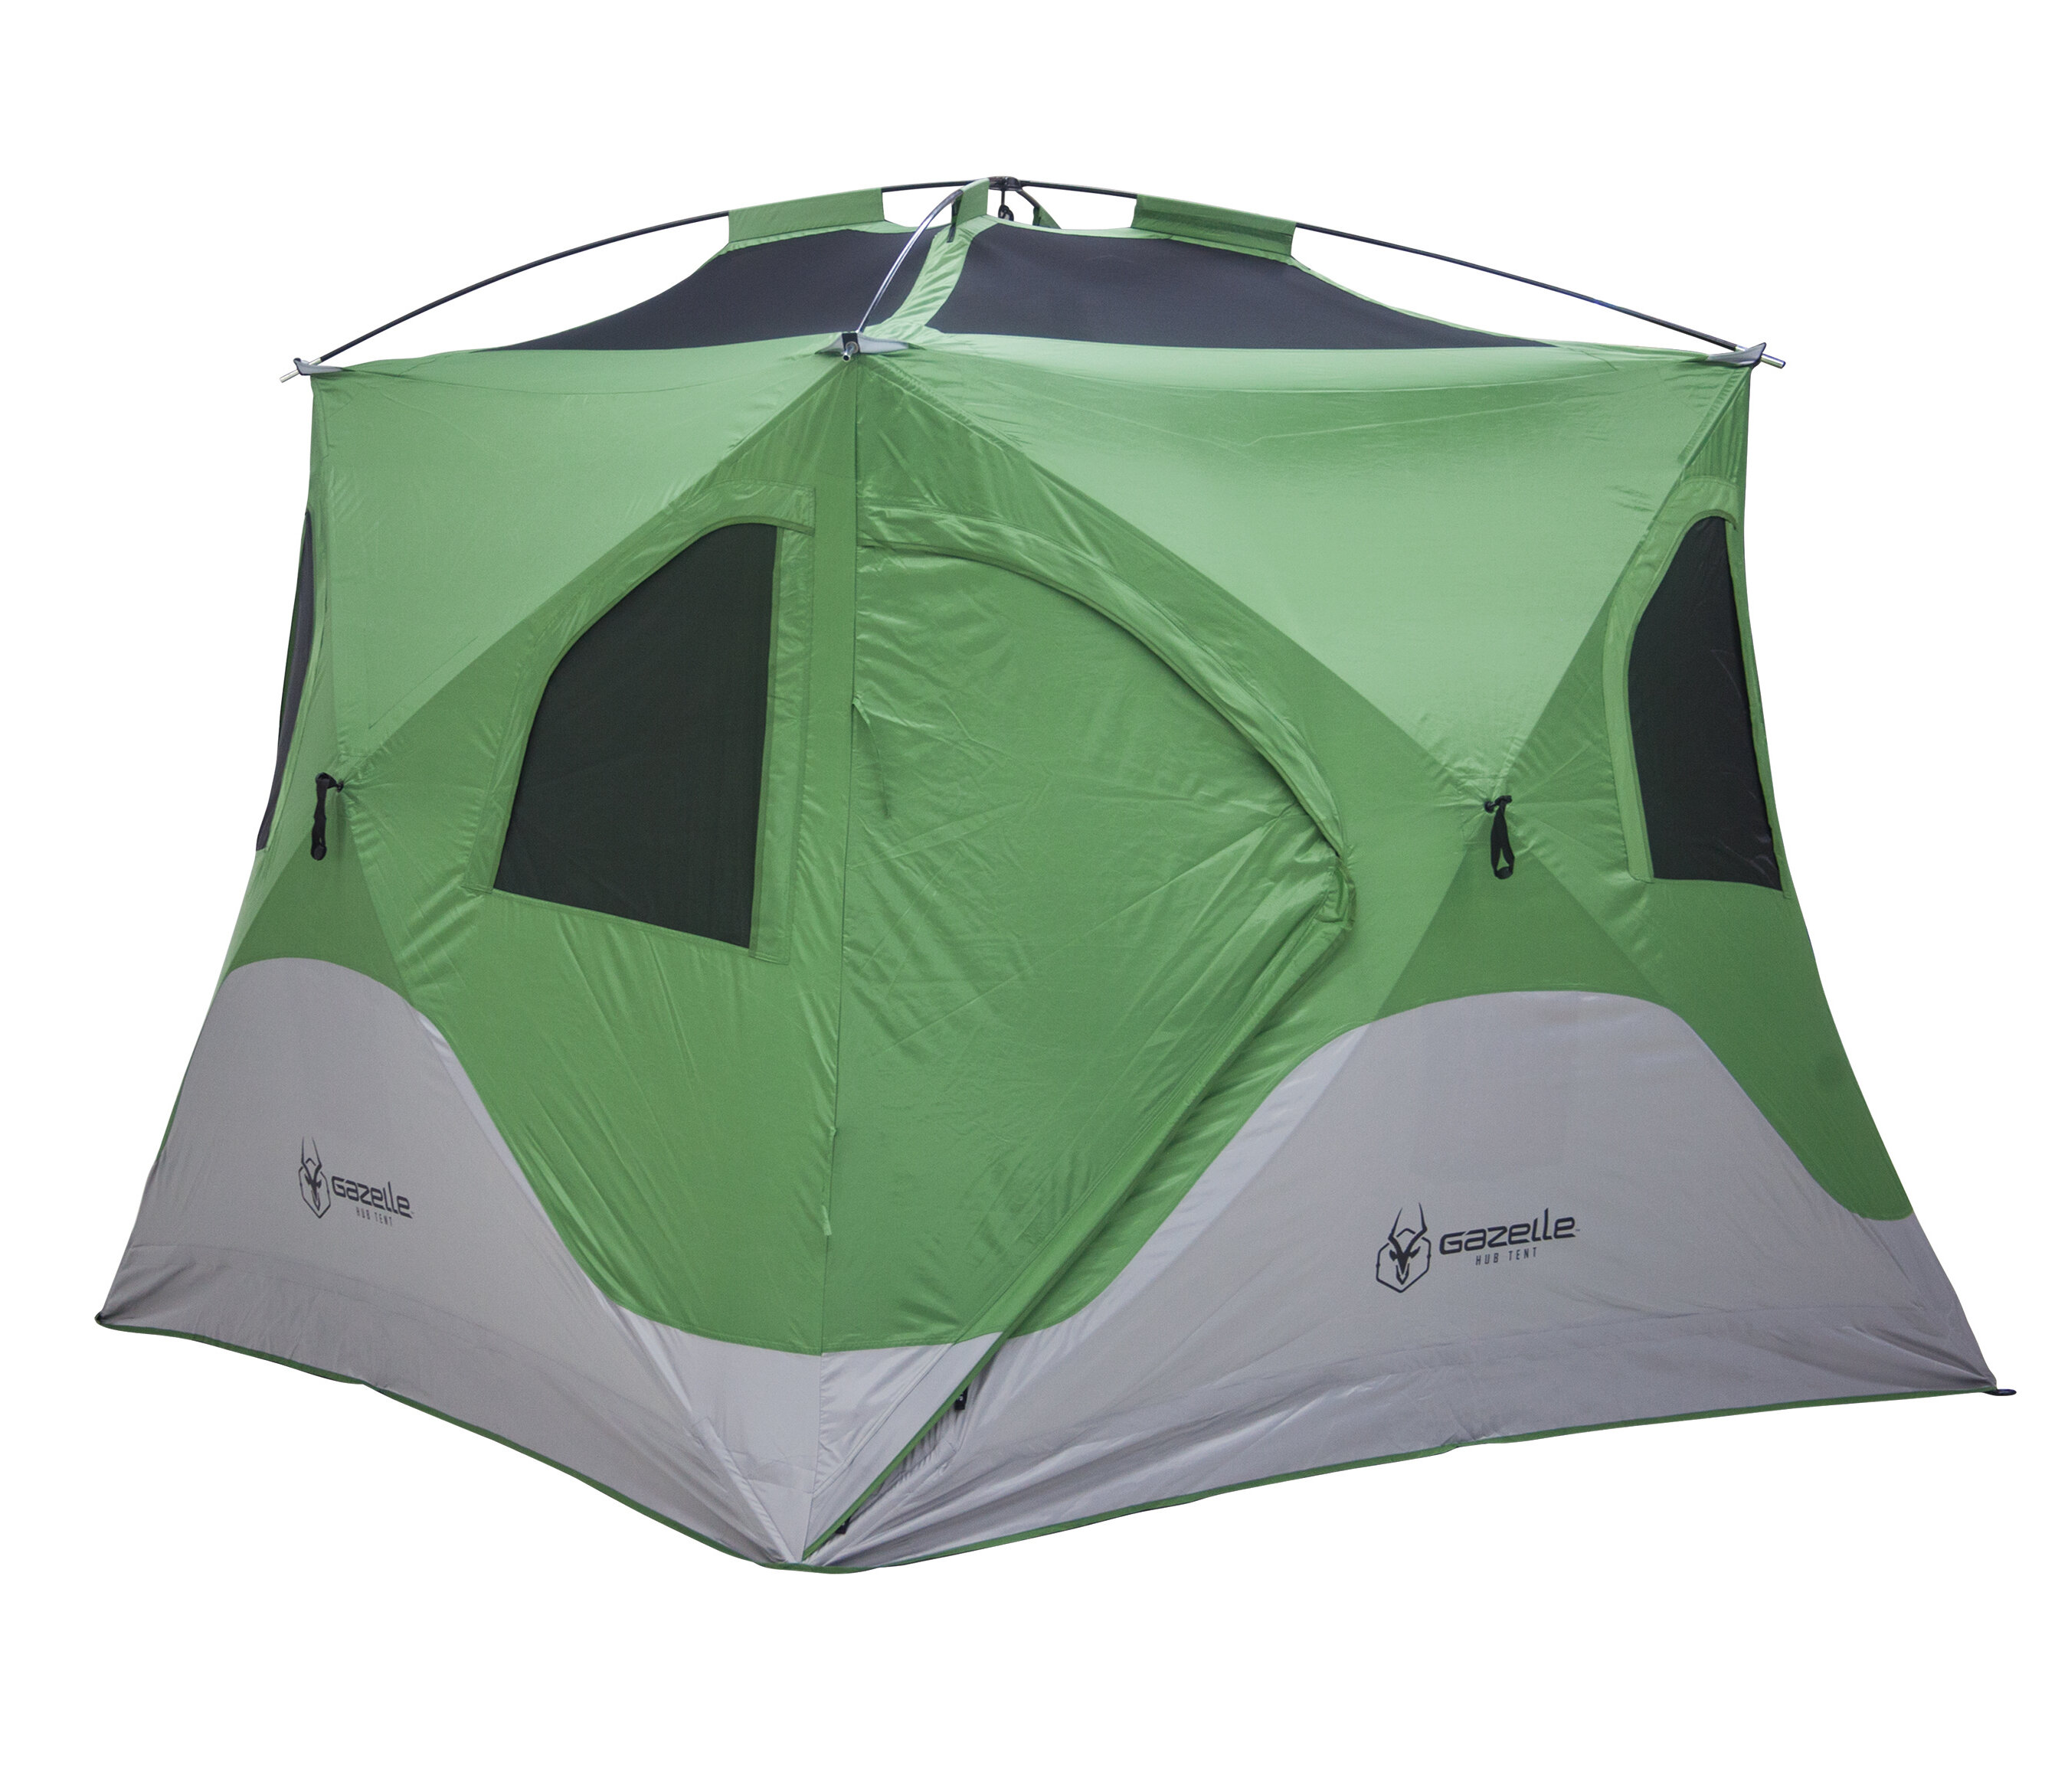 sc 1 st  Wayfair & Gazelle Pop Up Portable Camping Hub 3 Person Tent | Wayfair